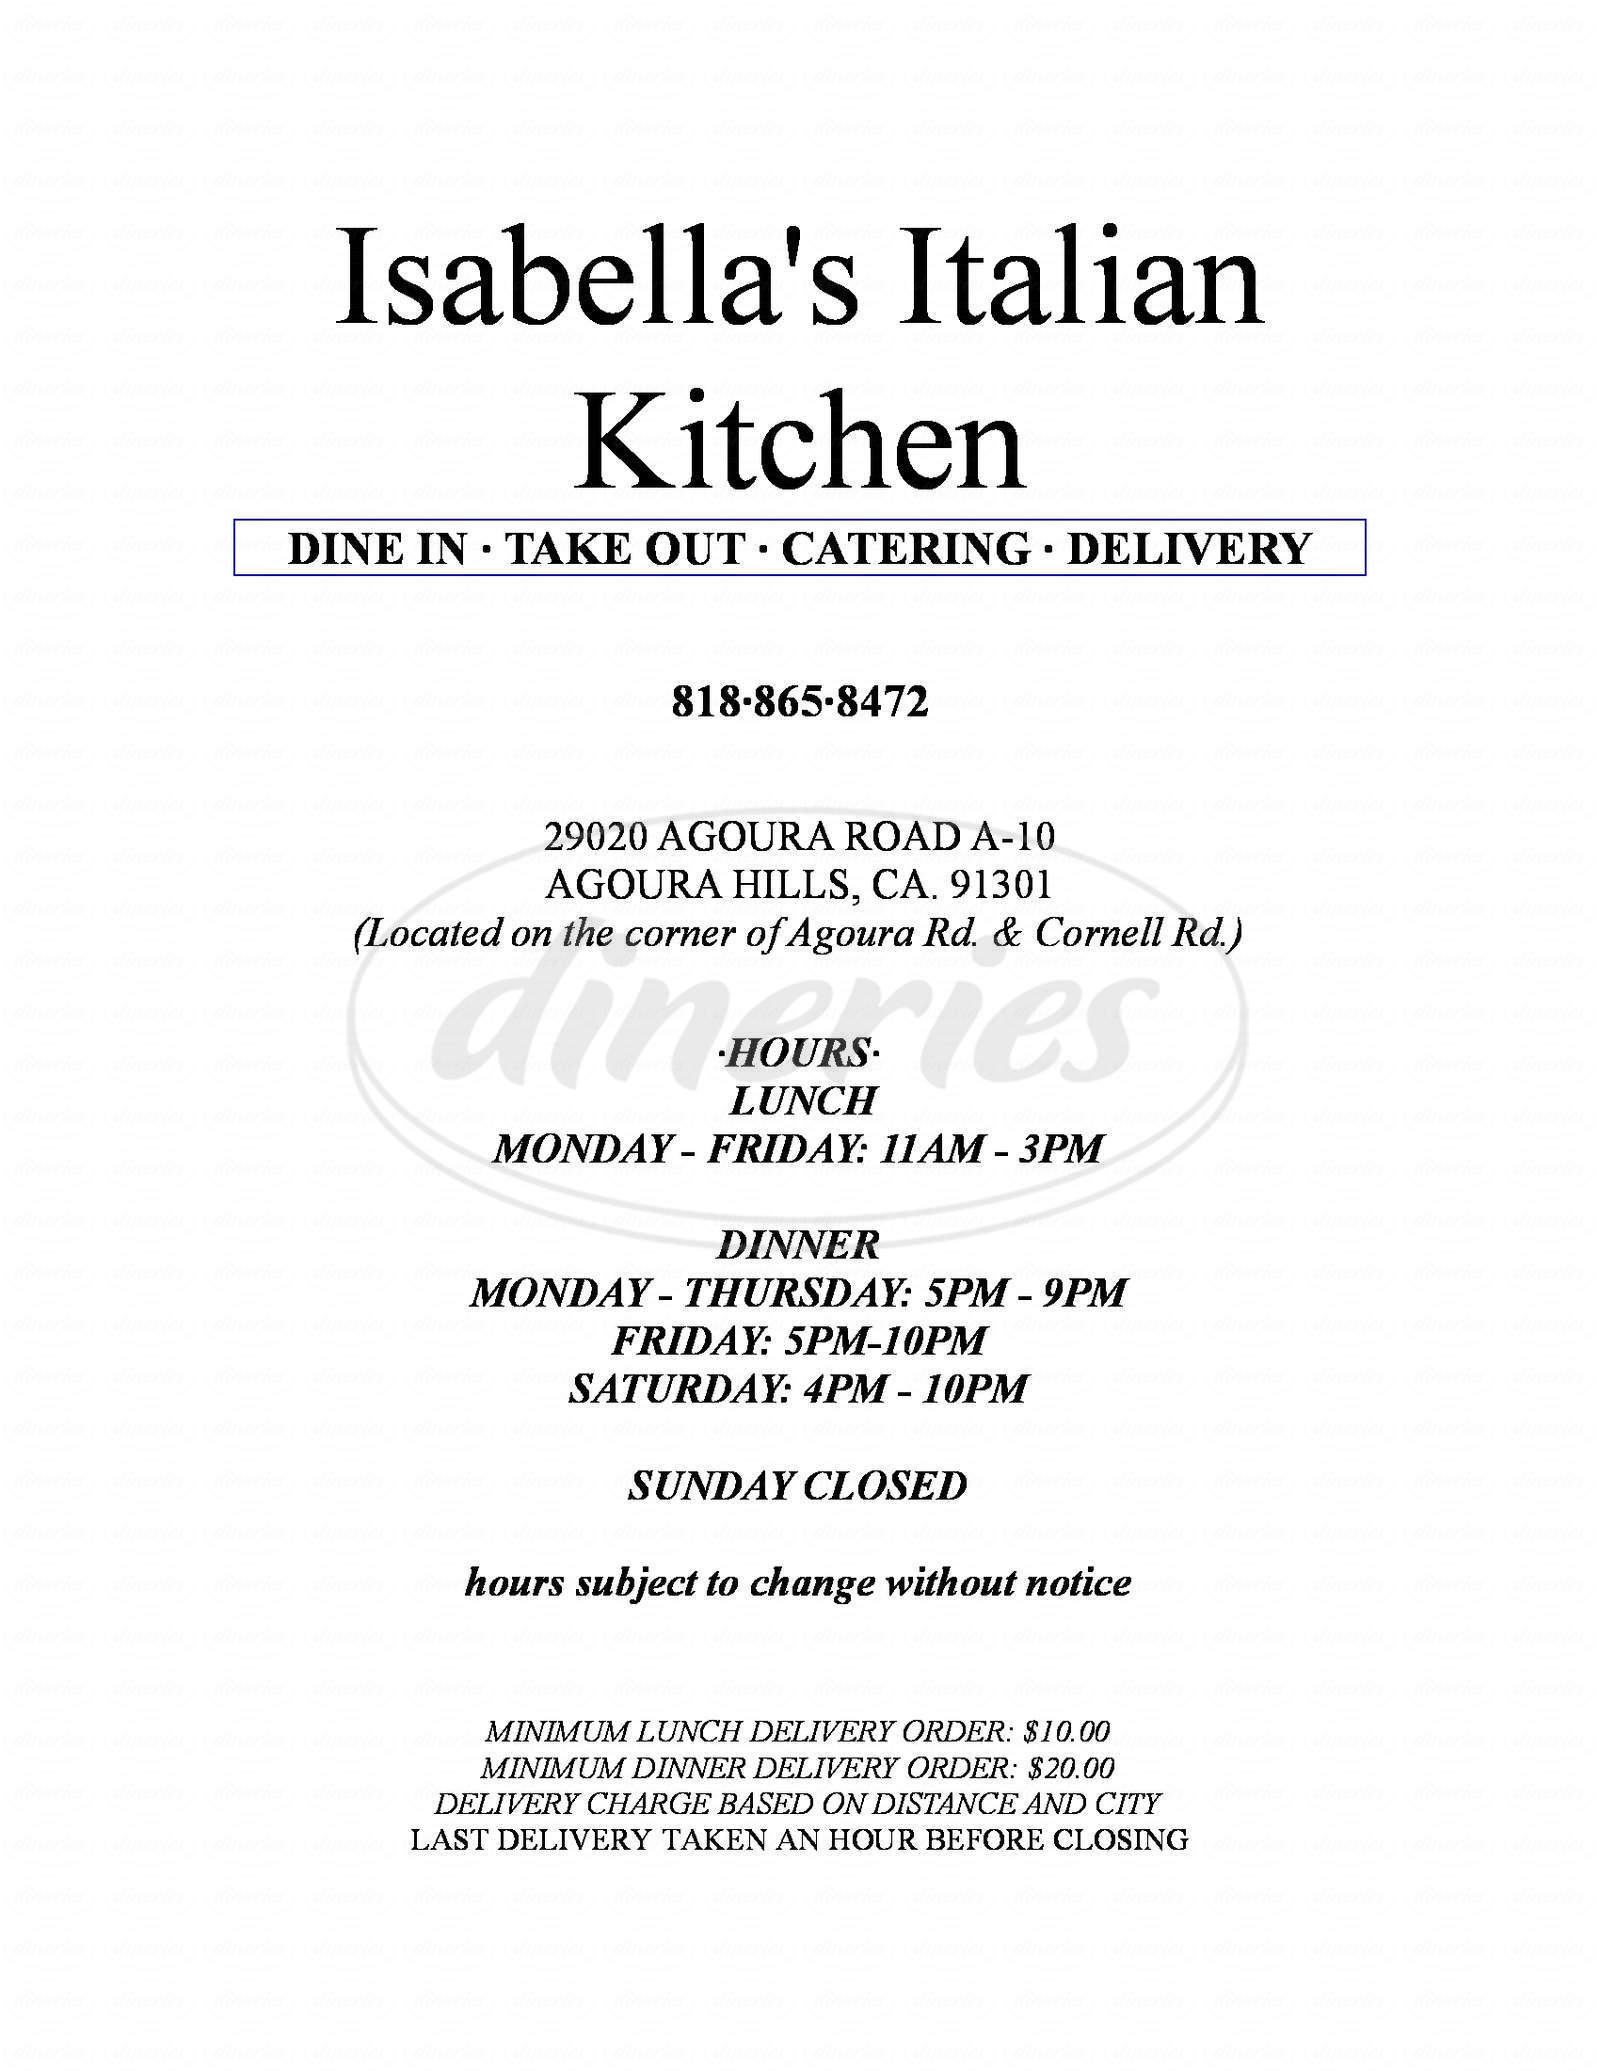 menu for Isabella's Italian Kitchen